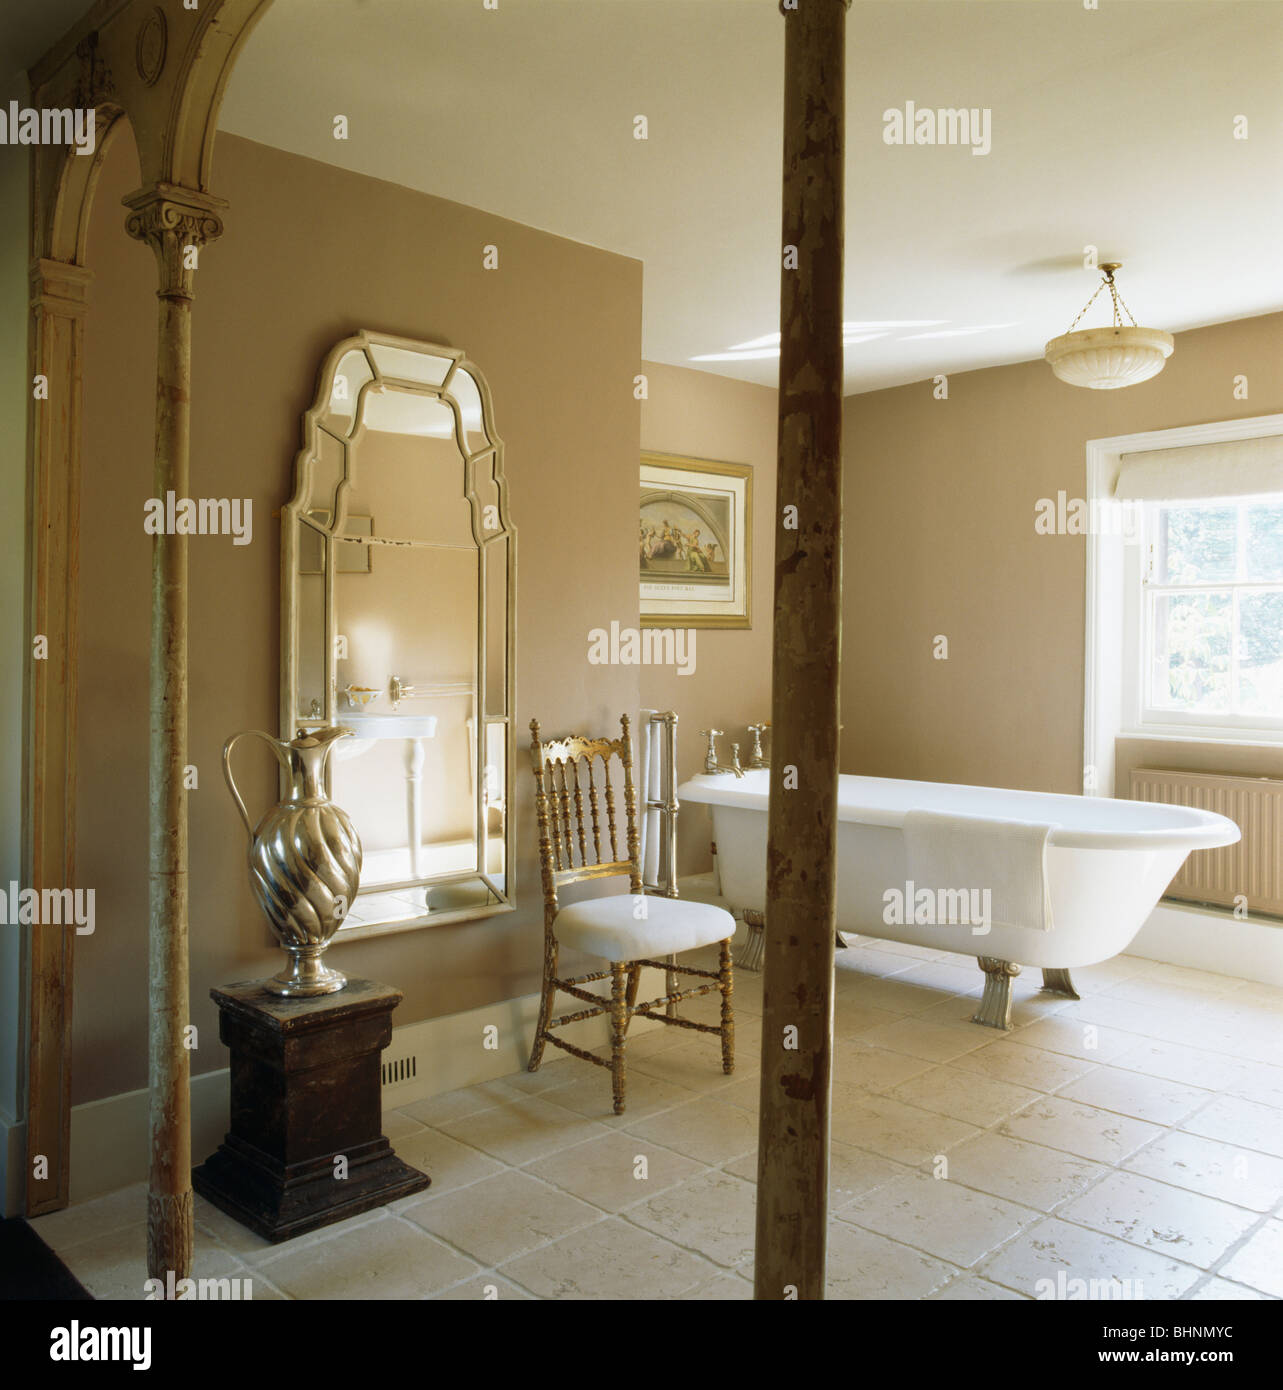 Large Venetian Mirror And Roll Top Bath In Beige Bathroom With Limestone Tiled Floor